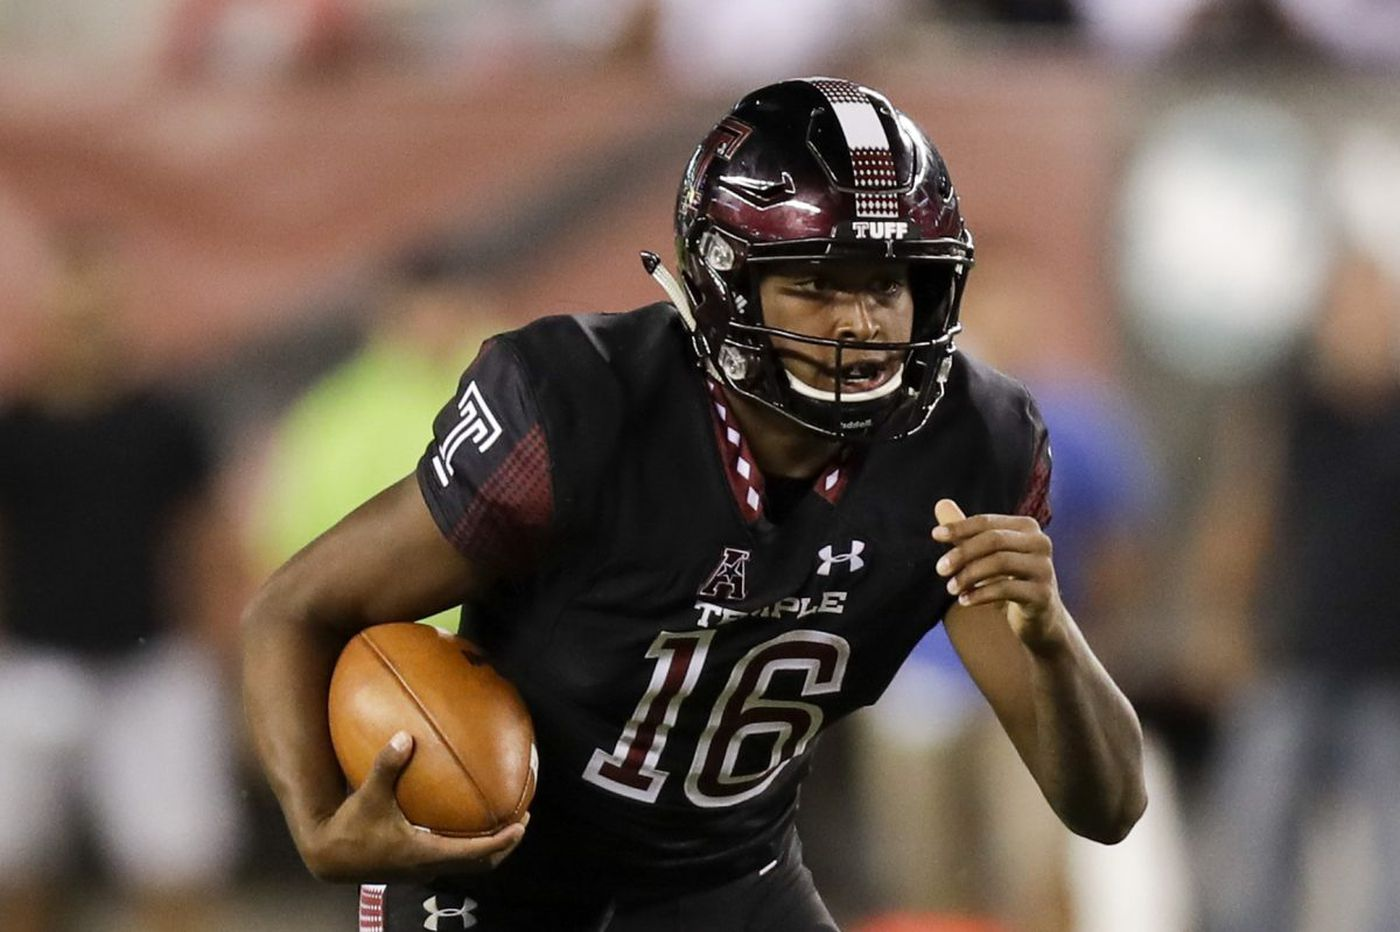 Temple's 27-17 win over East Carolina: Four observations